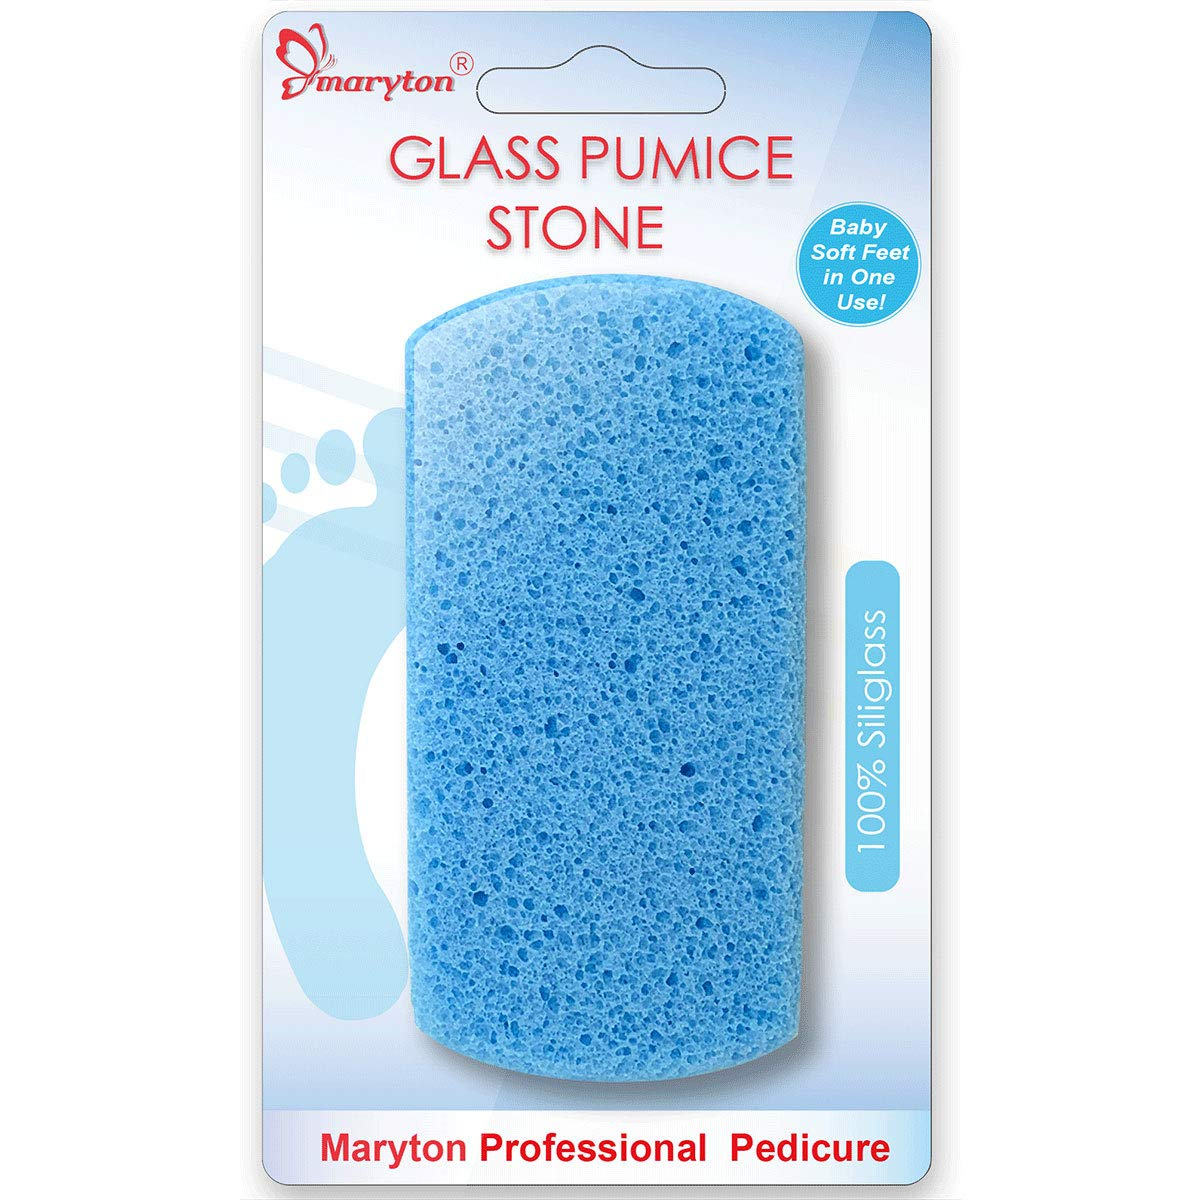 Double Sided Pumice Stone for Feet Hard Skin 100% Siliglass Callus Remover, Exfoliates Feet & Smooths Skin: Beauty